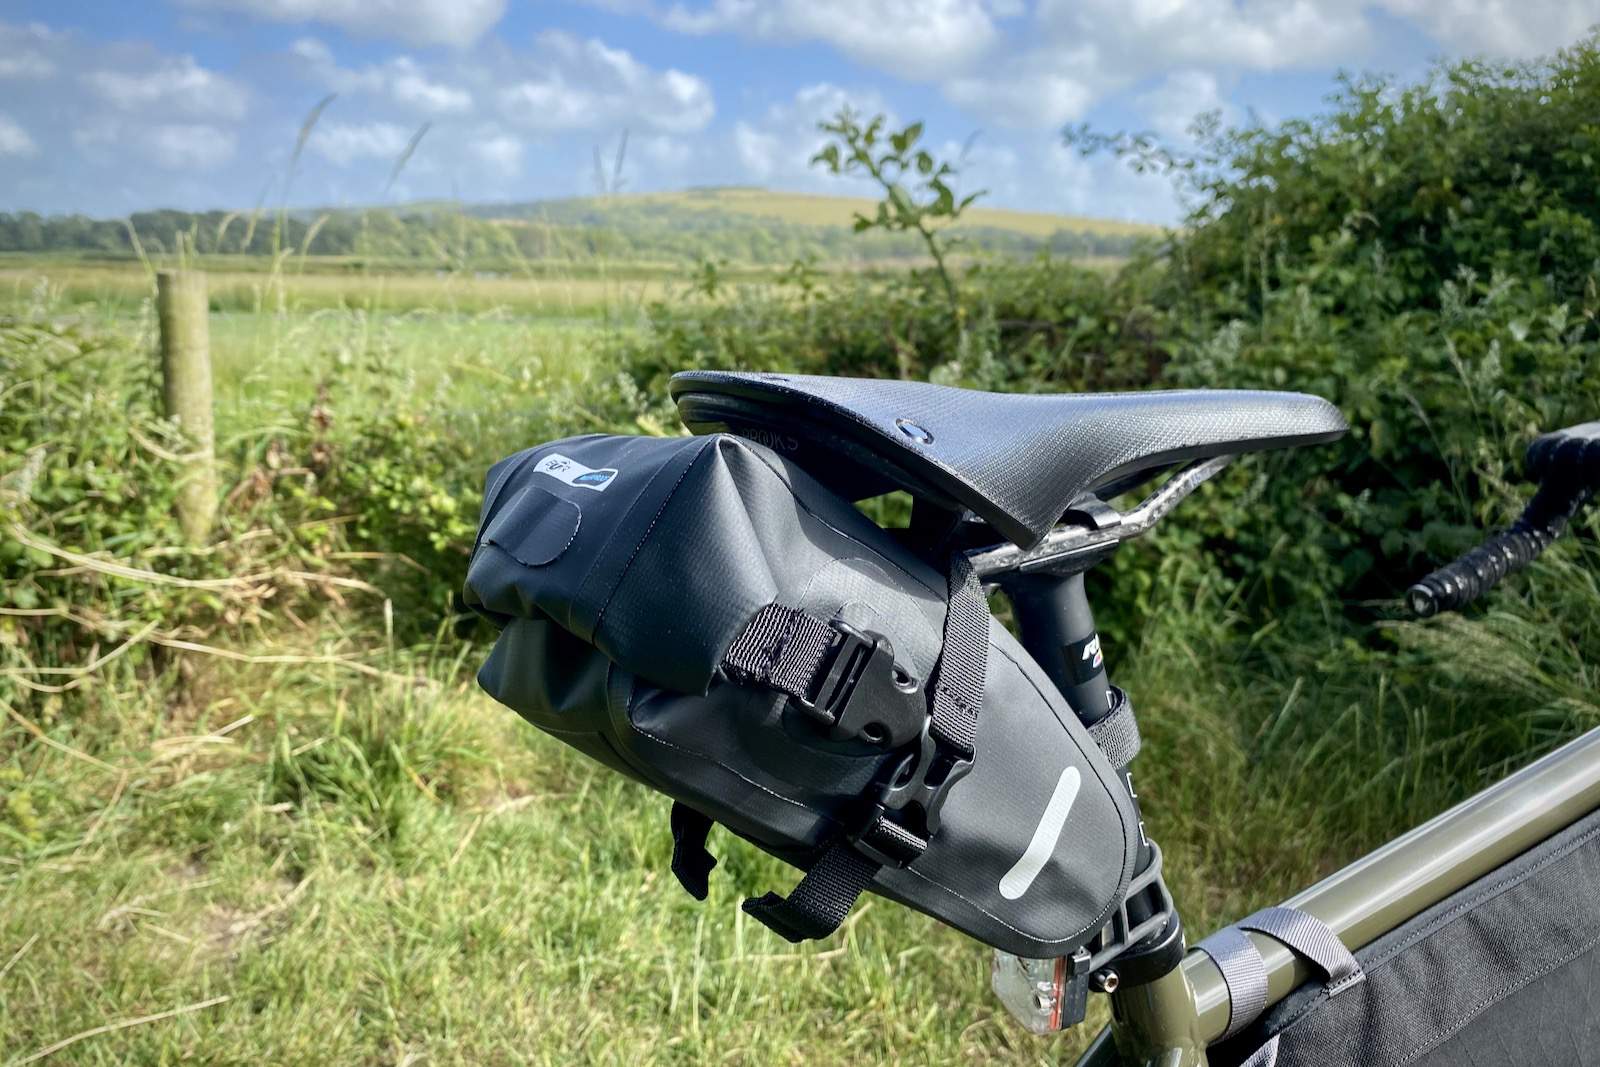 BTR Products Waterproof Handlebar Bag Review